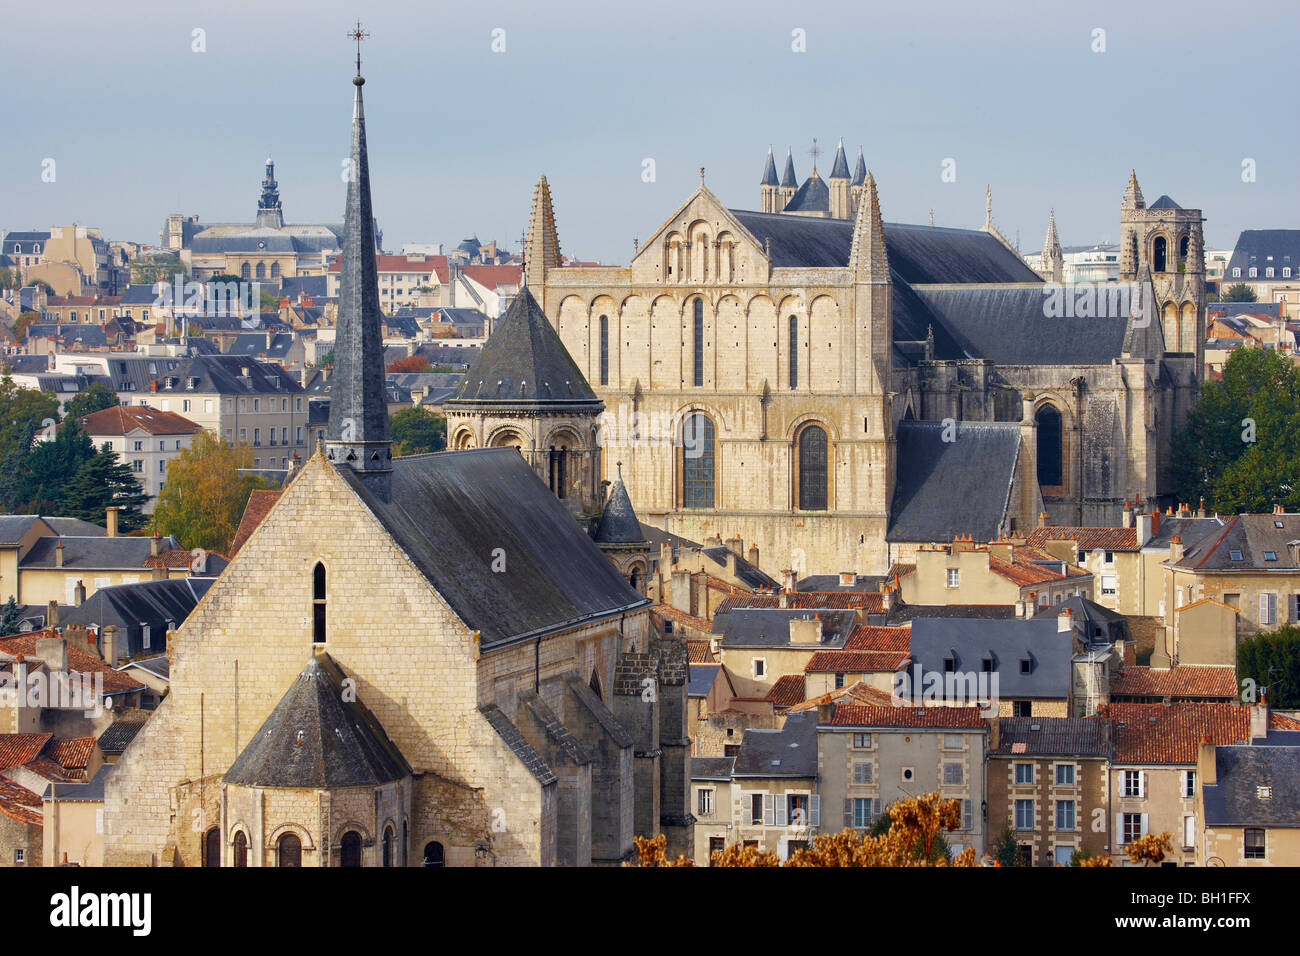 Town of Poitiers with Cathedral St Pierre, Chapel Sainte Radegonde, The Way of St. James, Chemins de Saint Jacques, - Stock Image